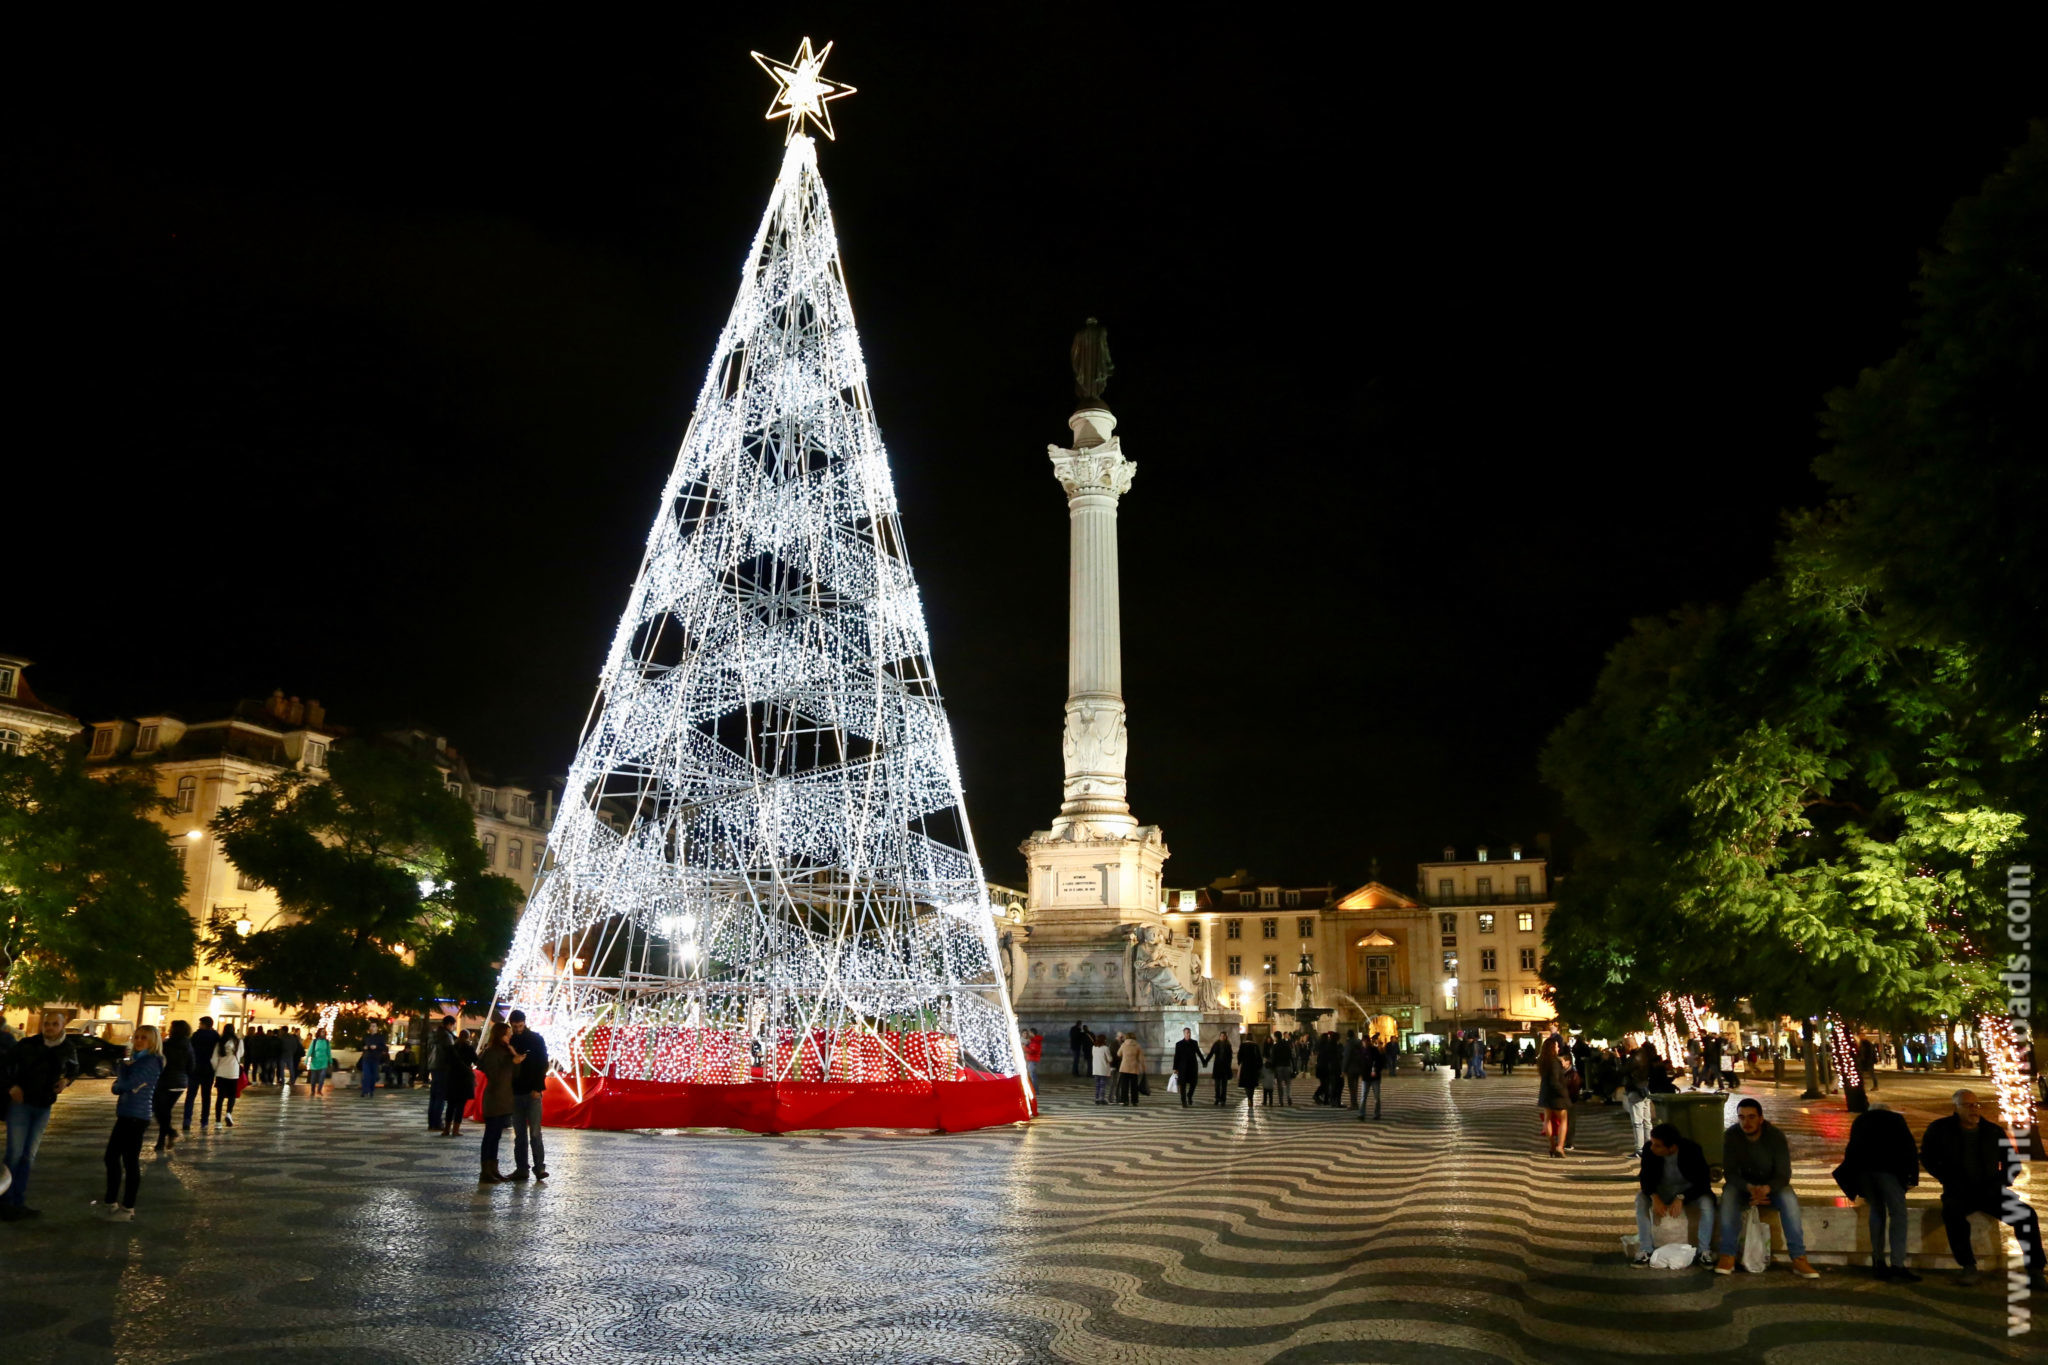 Christmas Tree in Lissabon, Portugal